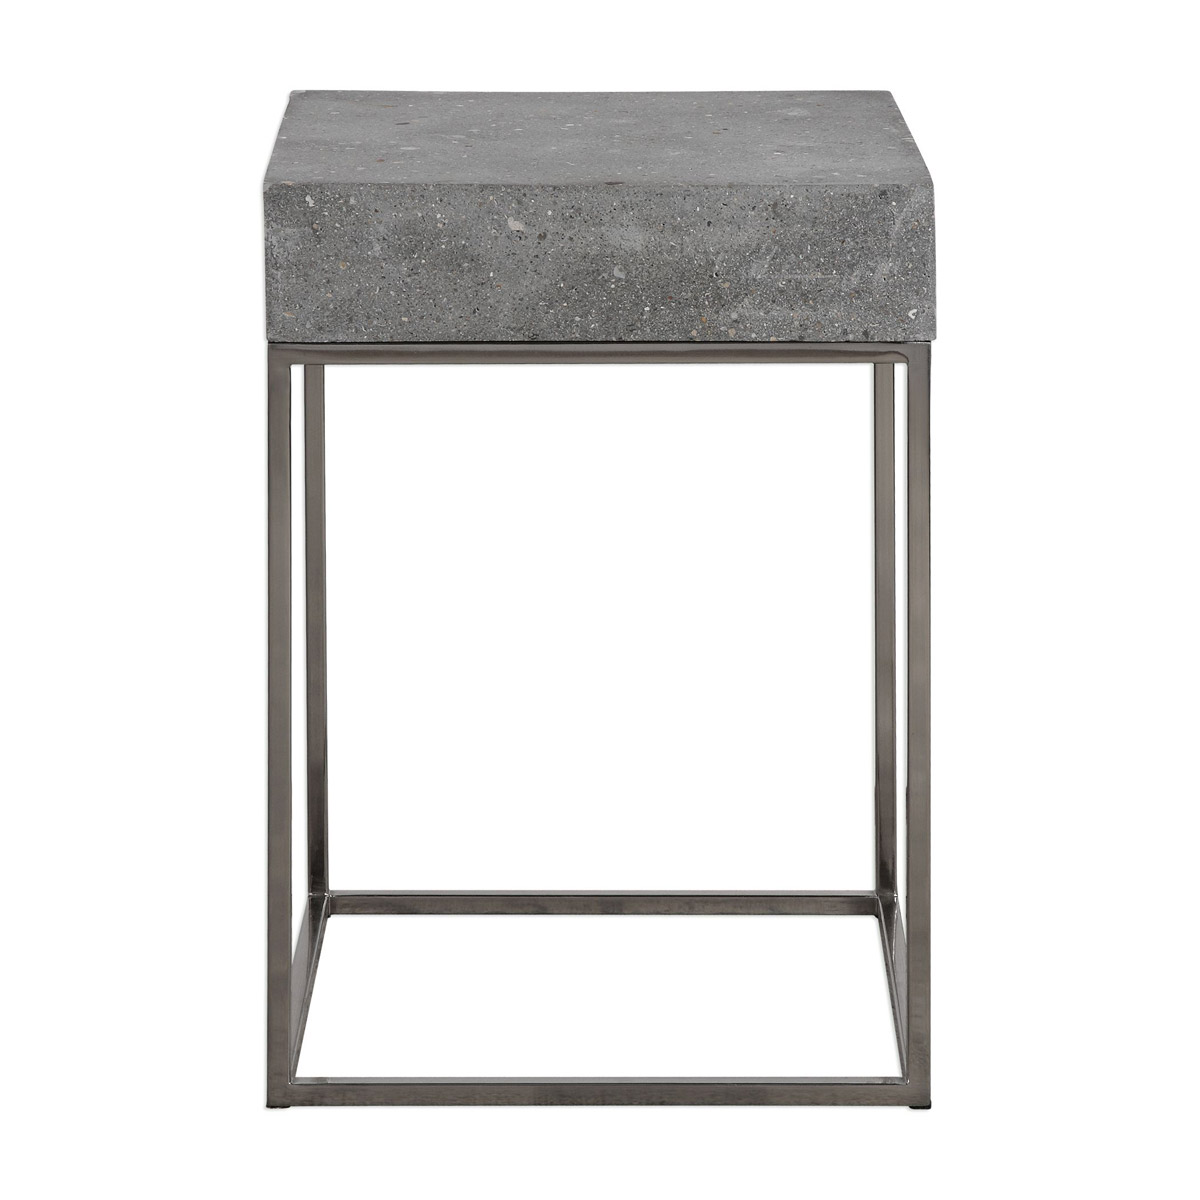 Details About Uttermost 24735 Jude 20 X 14 Inch Concrete End Table David Frisch